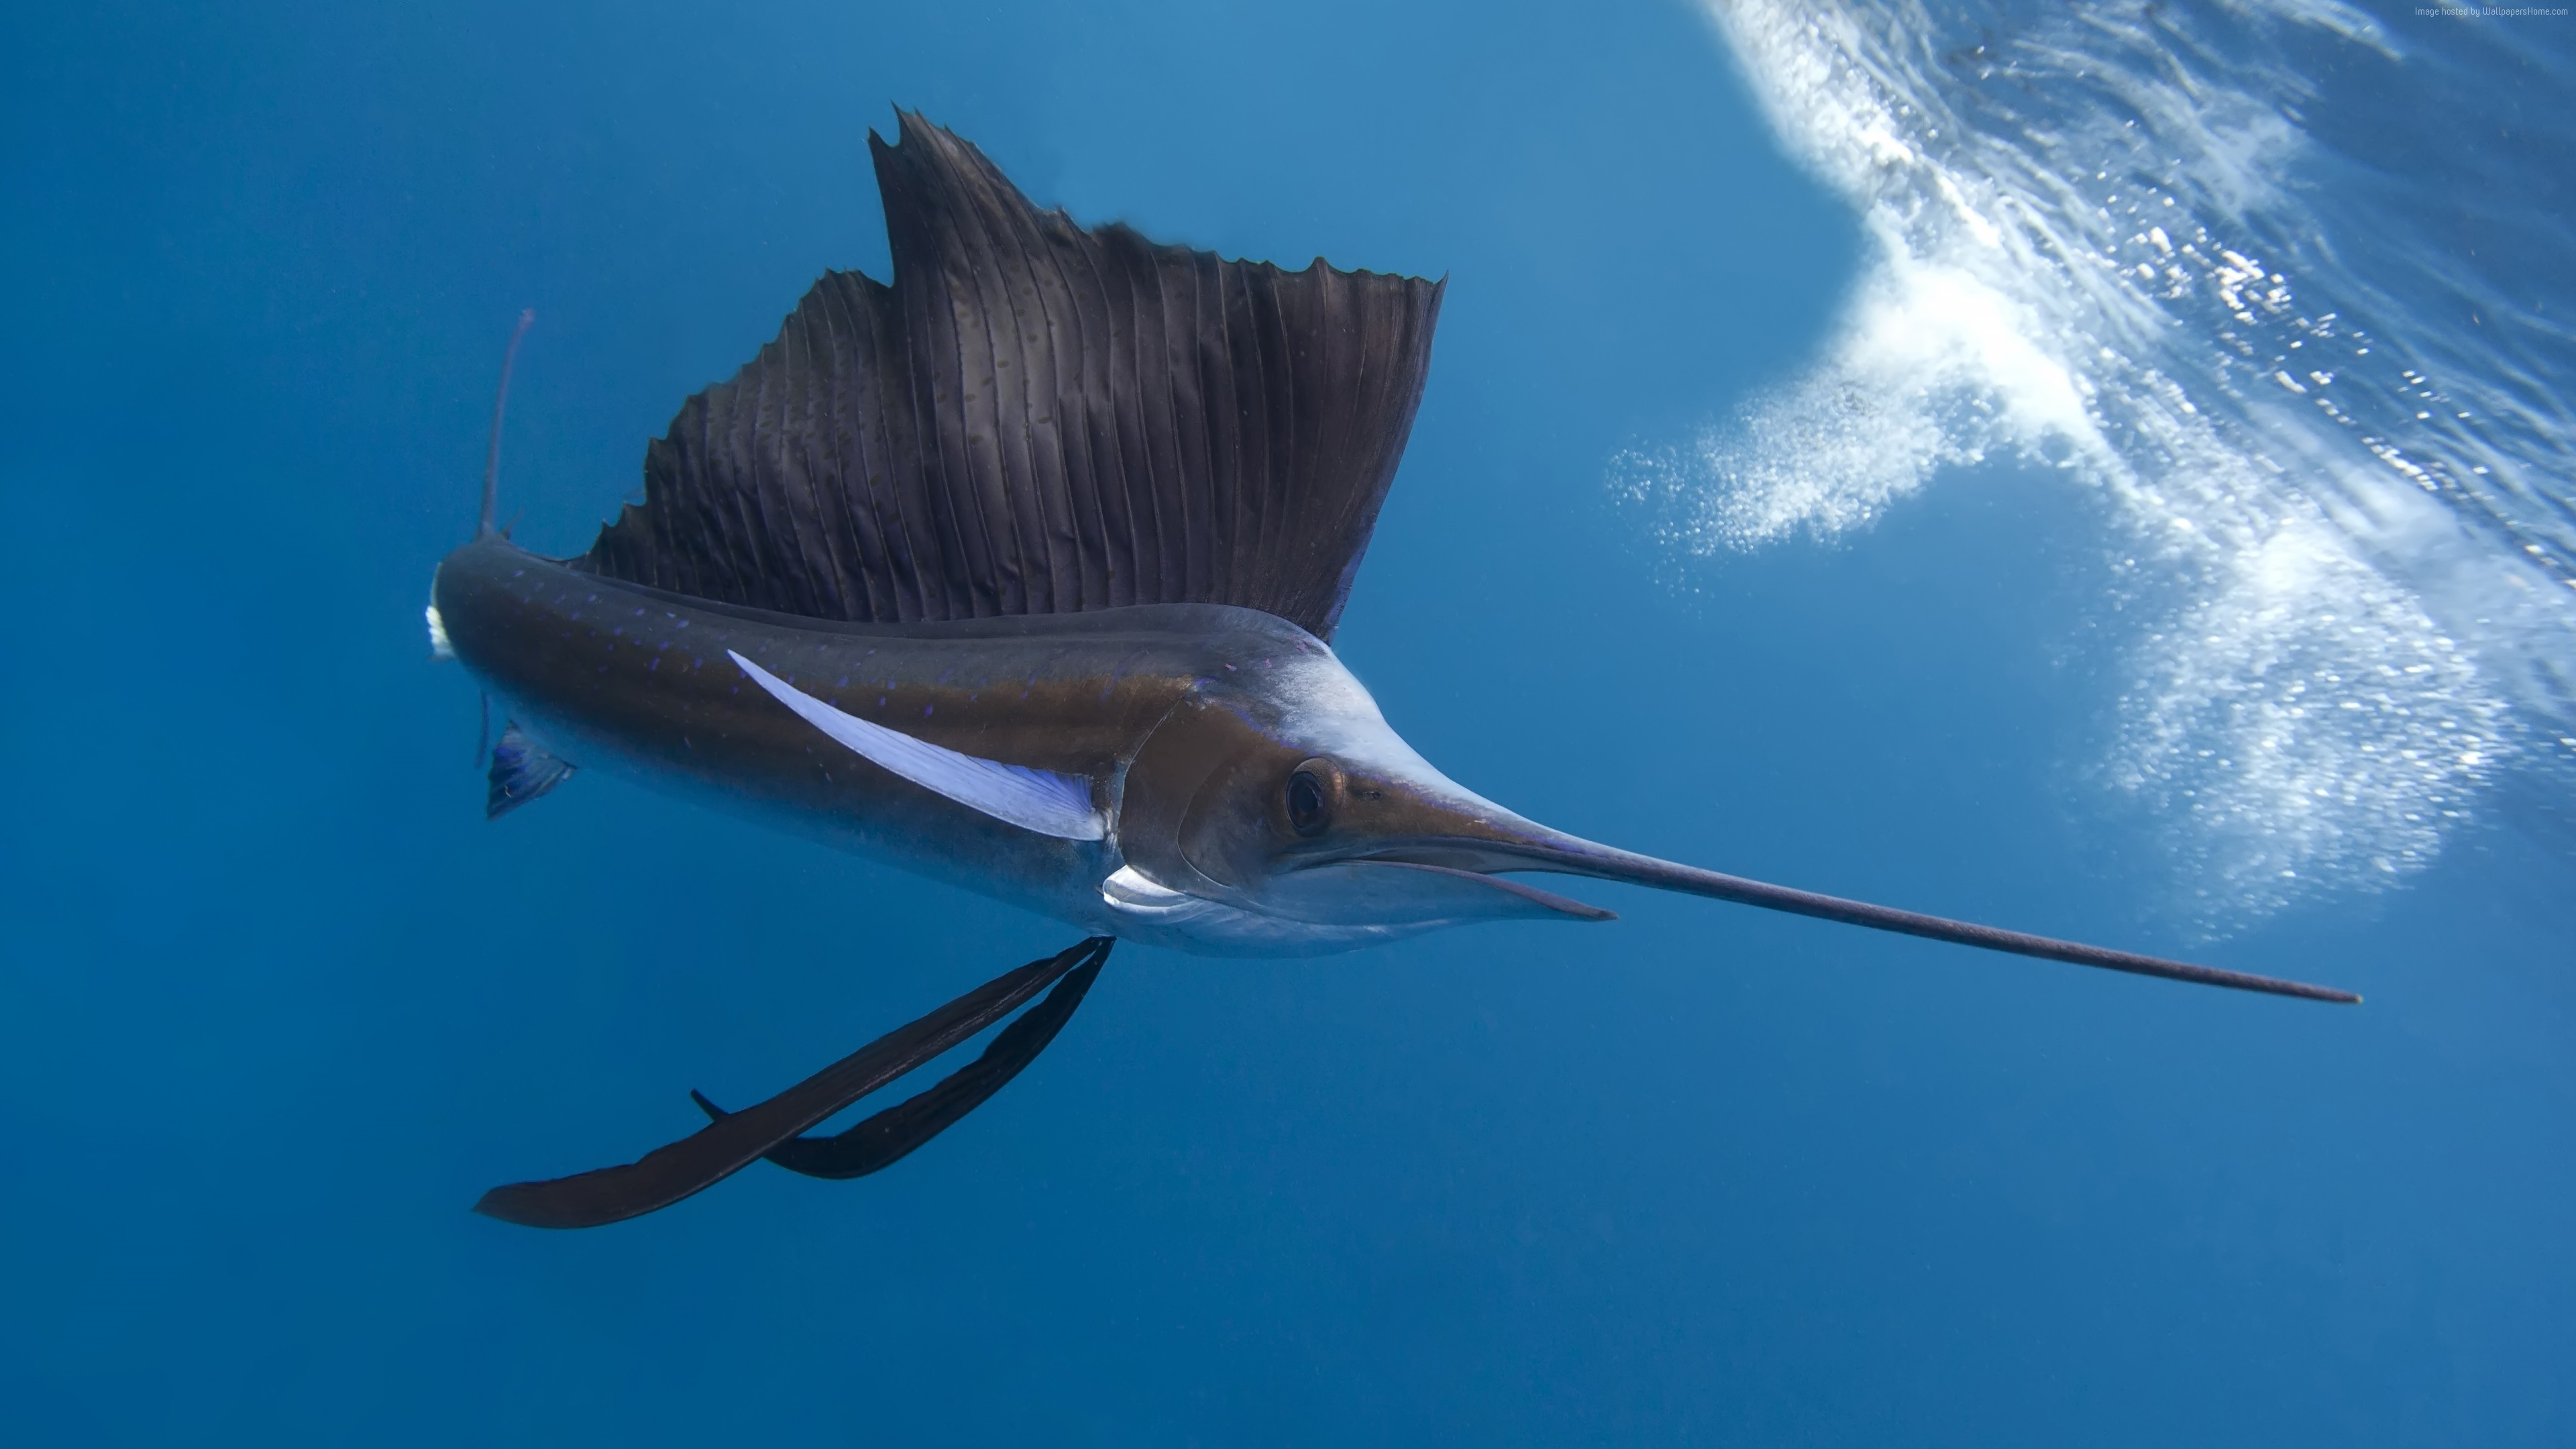 Wallpaper Pacific sailfish, Thailand, Indian ocean, Pacific ocean, tropical regions, diving, tourism, blue sea, fish, diving, tourism, World&